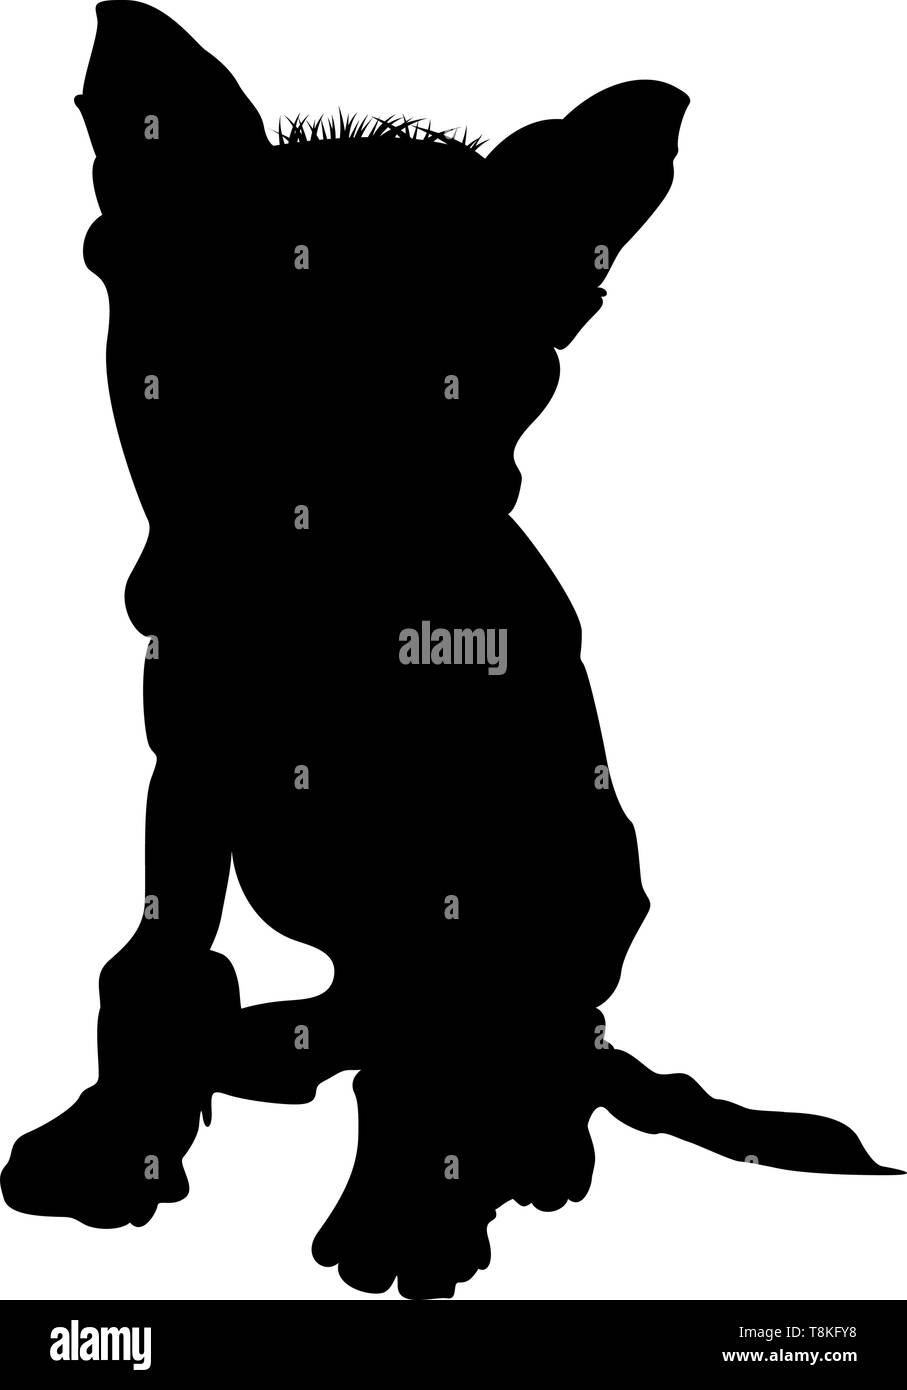 Chinese Crested Dog Silhouette. Smooth Vector Illustration. Stock Vector